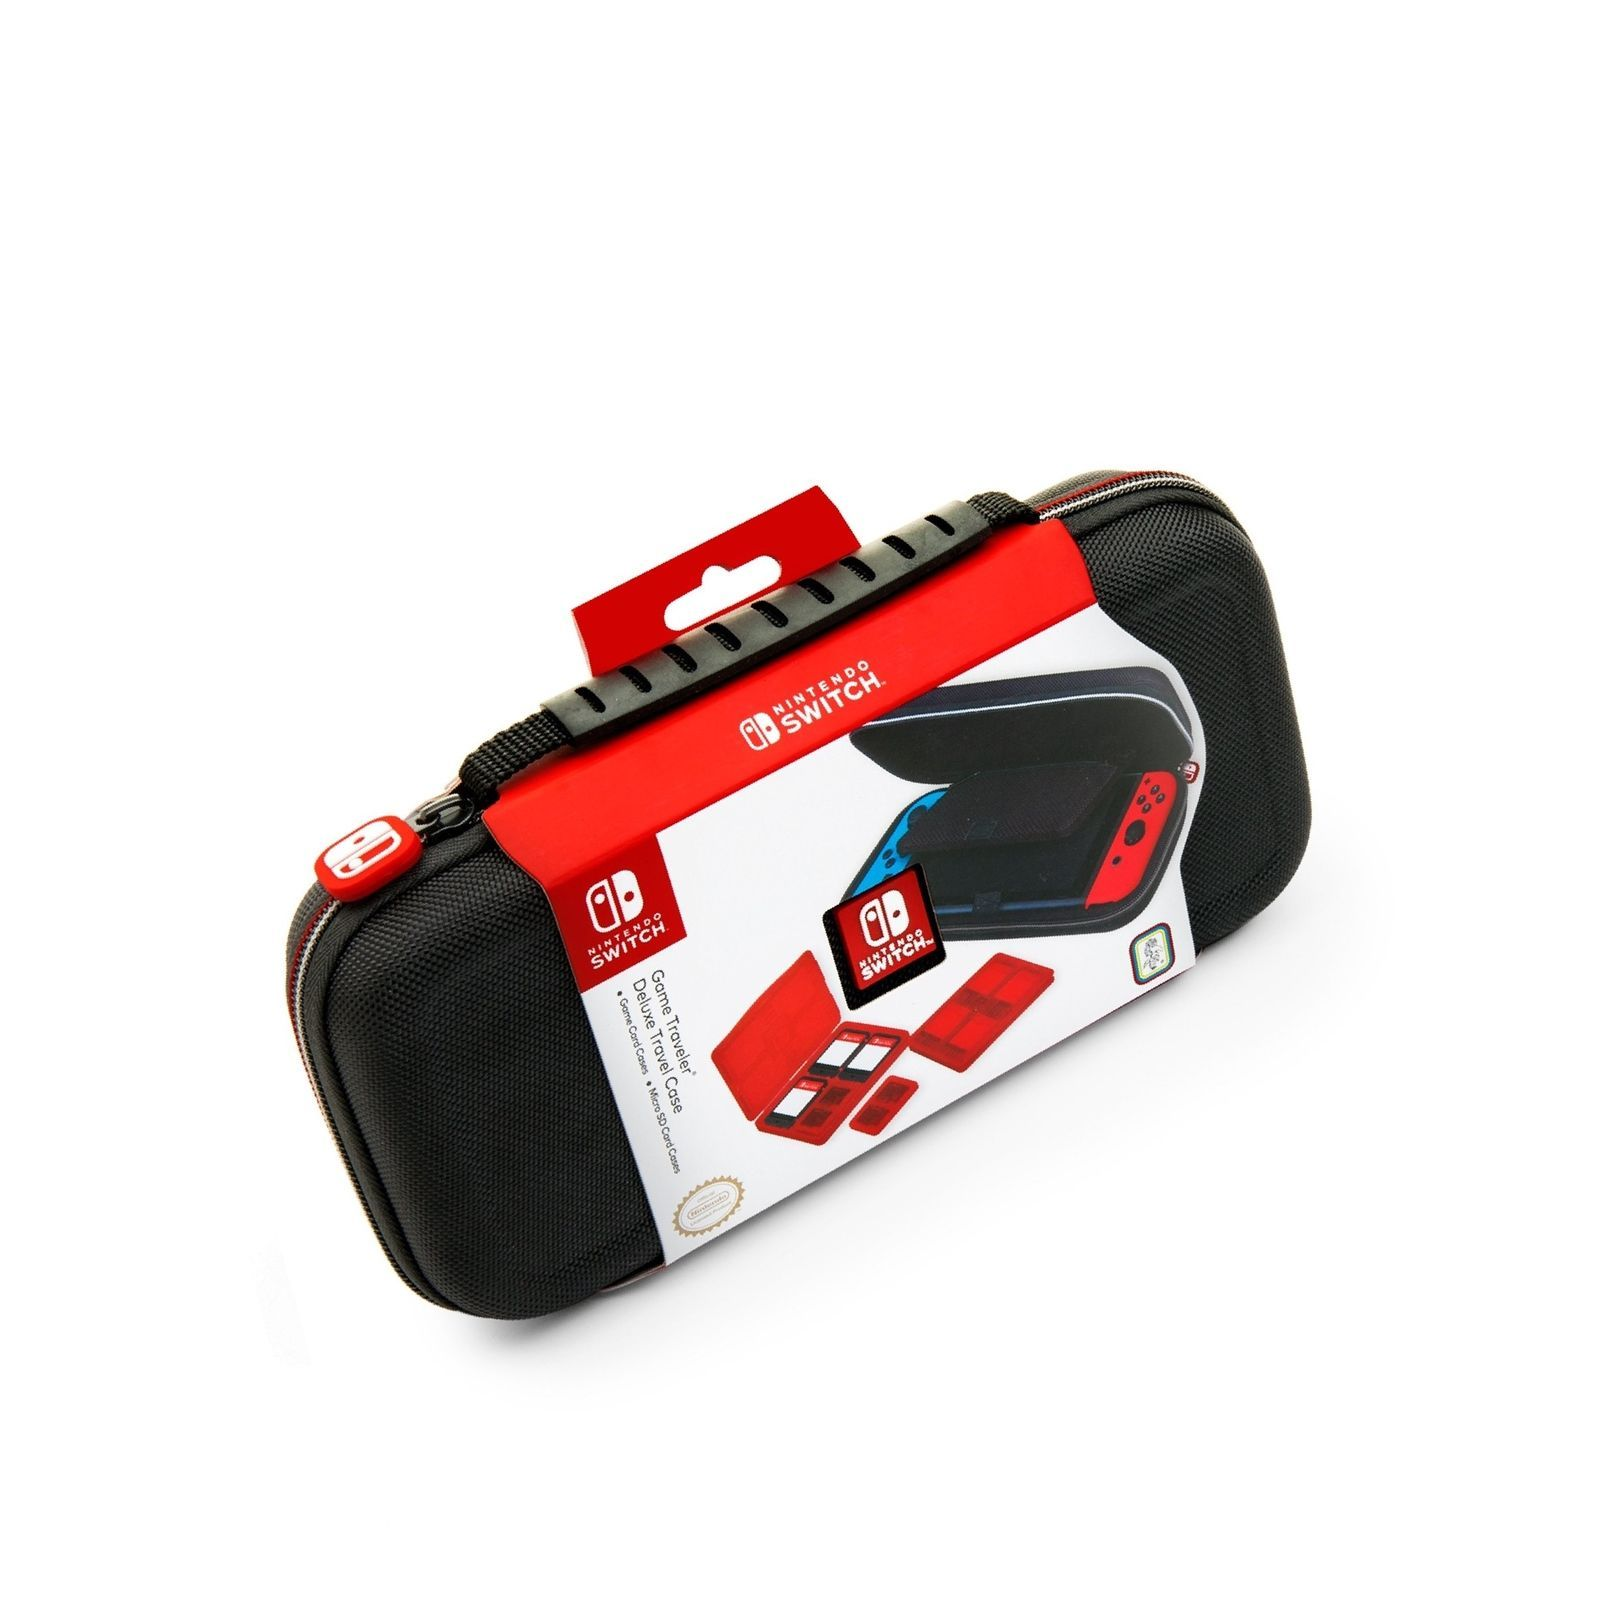 NINTENDO SWITCH DELUXE TRAVEL CASE - PREMIUM HARD CASE MADE WITH BALLISTIC NY...